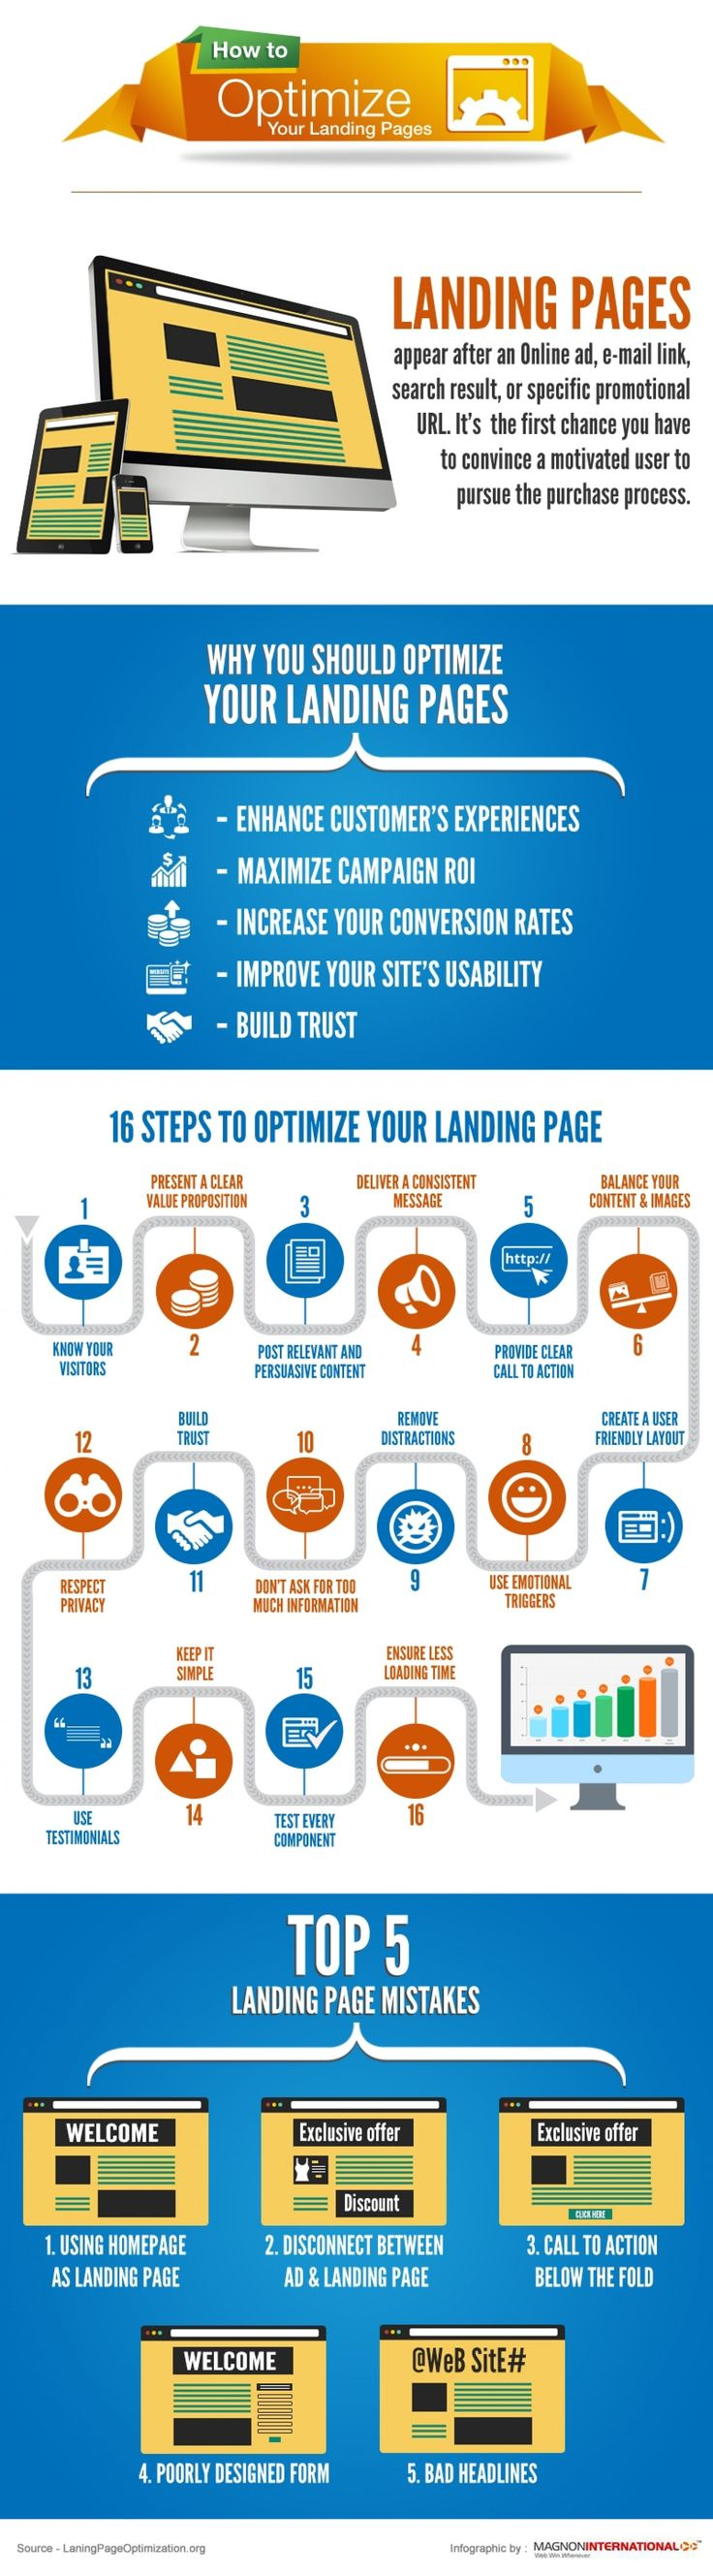 Learn more about how to optimize your Landing Page Db53090596c6408ad7bc3acd43f8894e